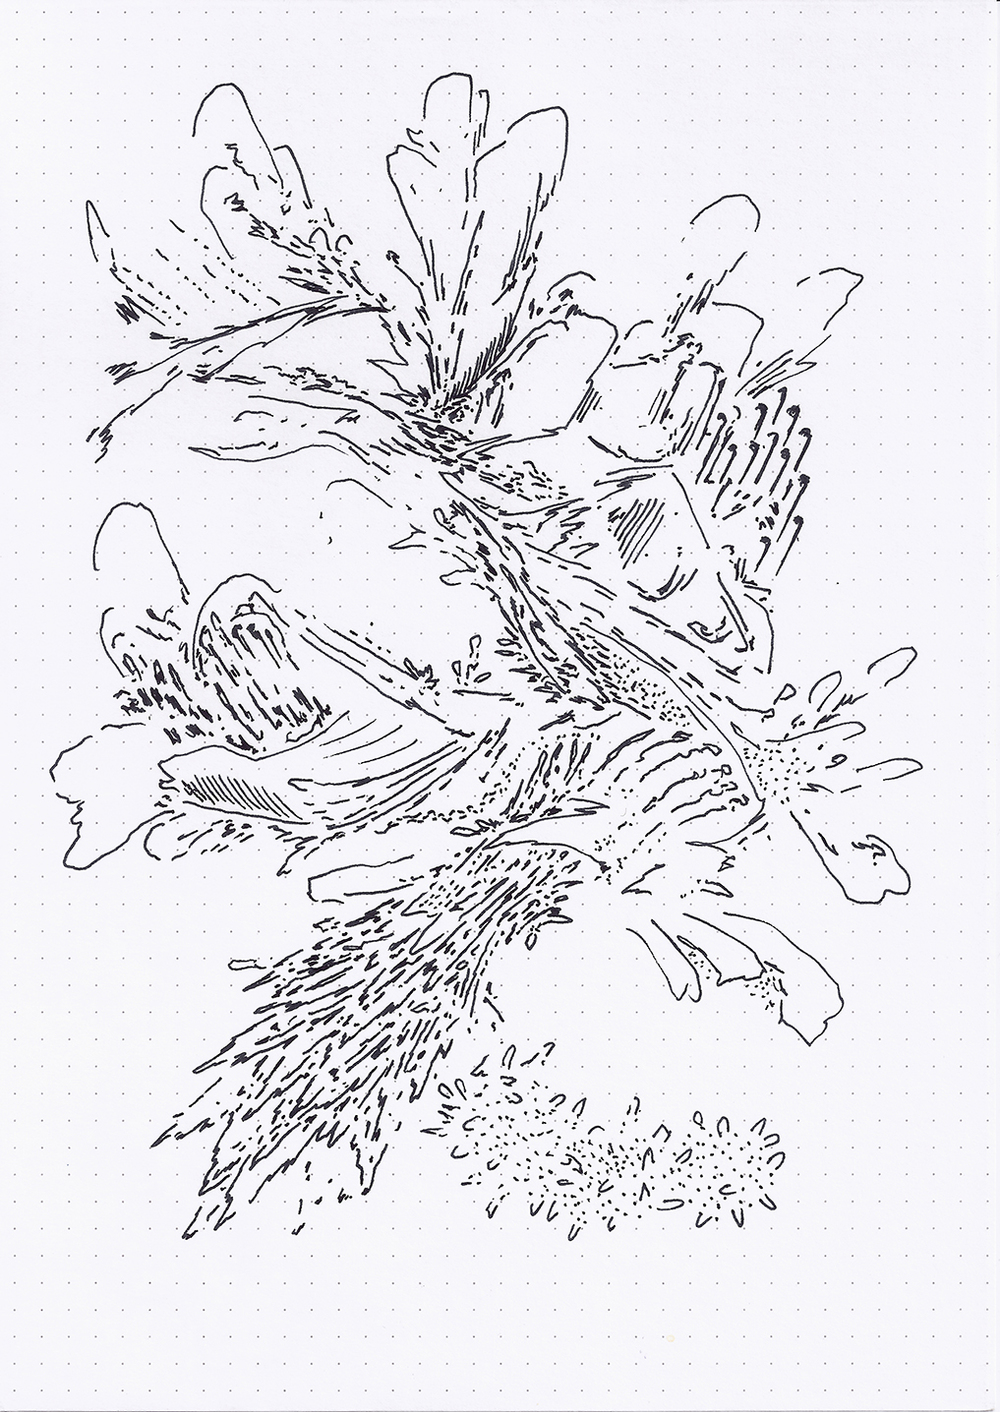 Field Drawing 15 (175 dpi).jpg